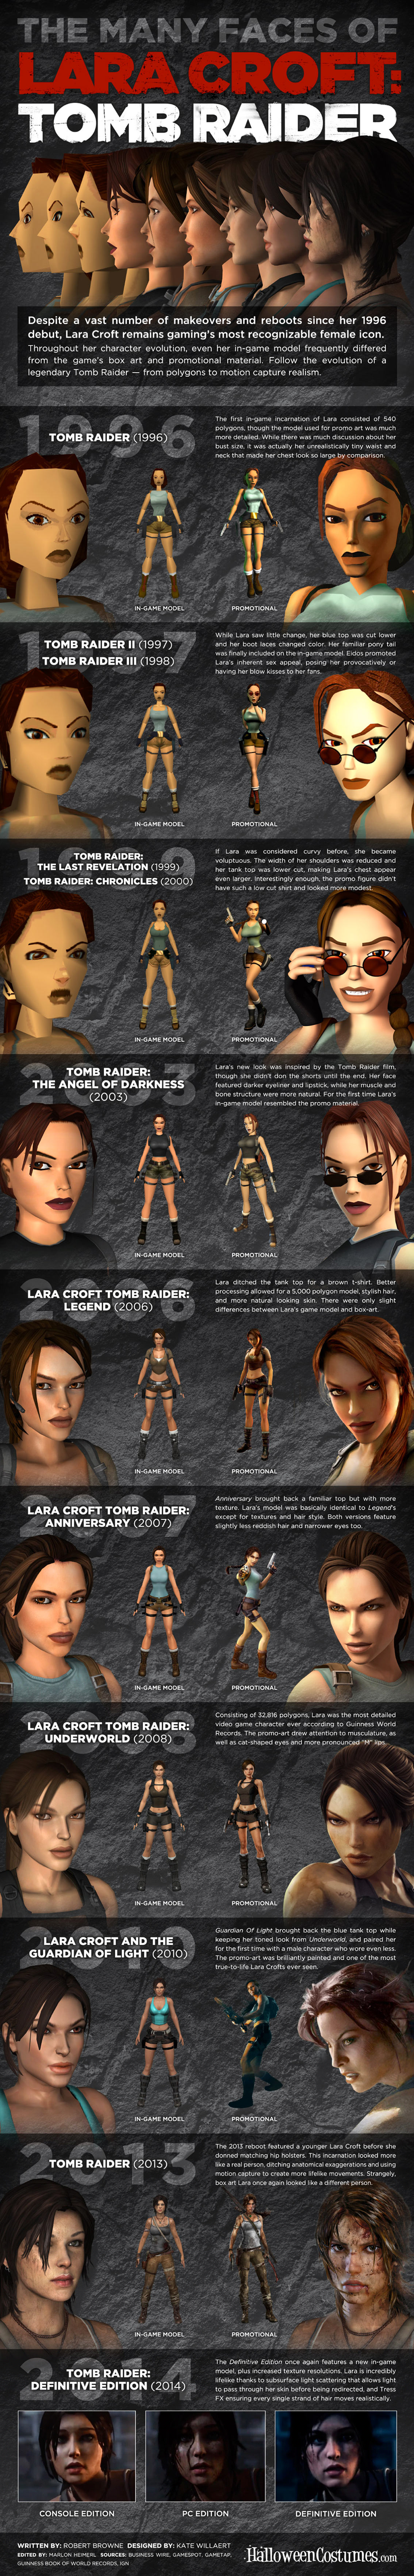 Many Faces of Lara Croft Tomb Raider Infographic